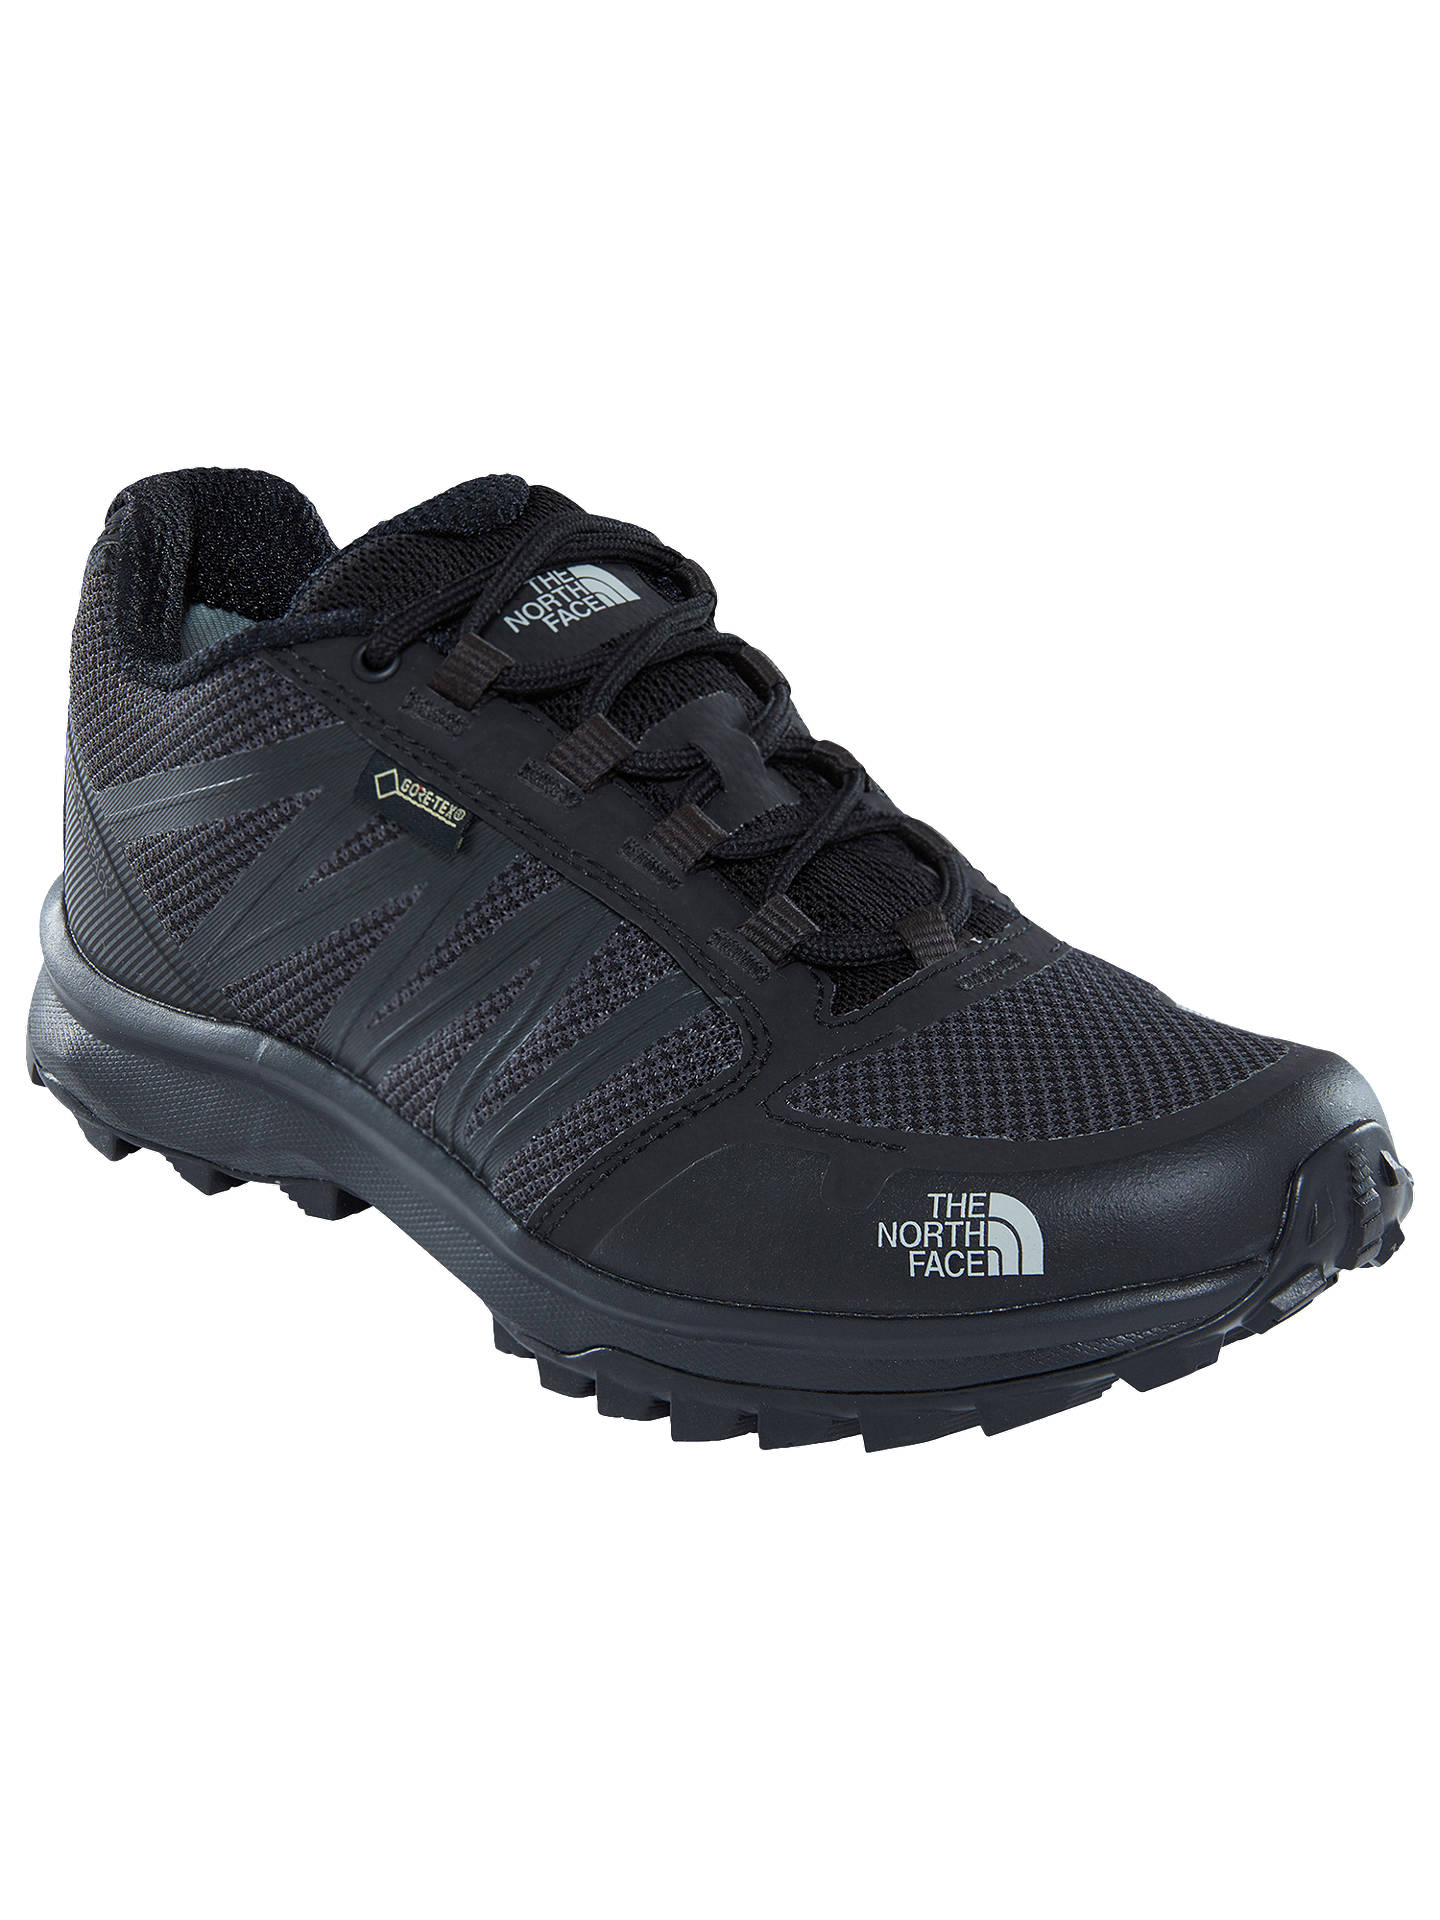 Buy The North Face Litewave Fastpack GTX Women's Hiking Shoes, Black, 6 Online at johnlewis.com